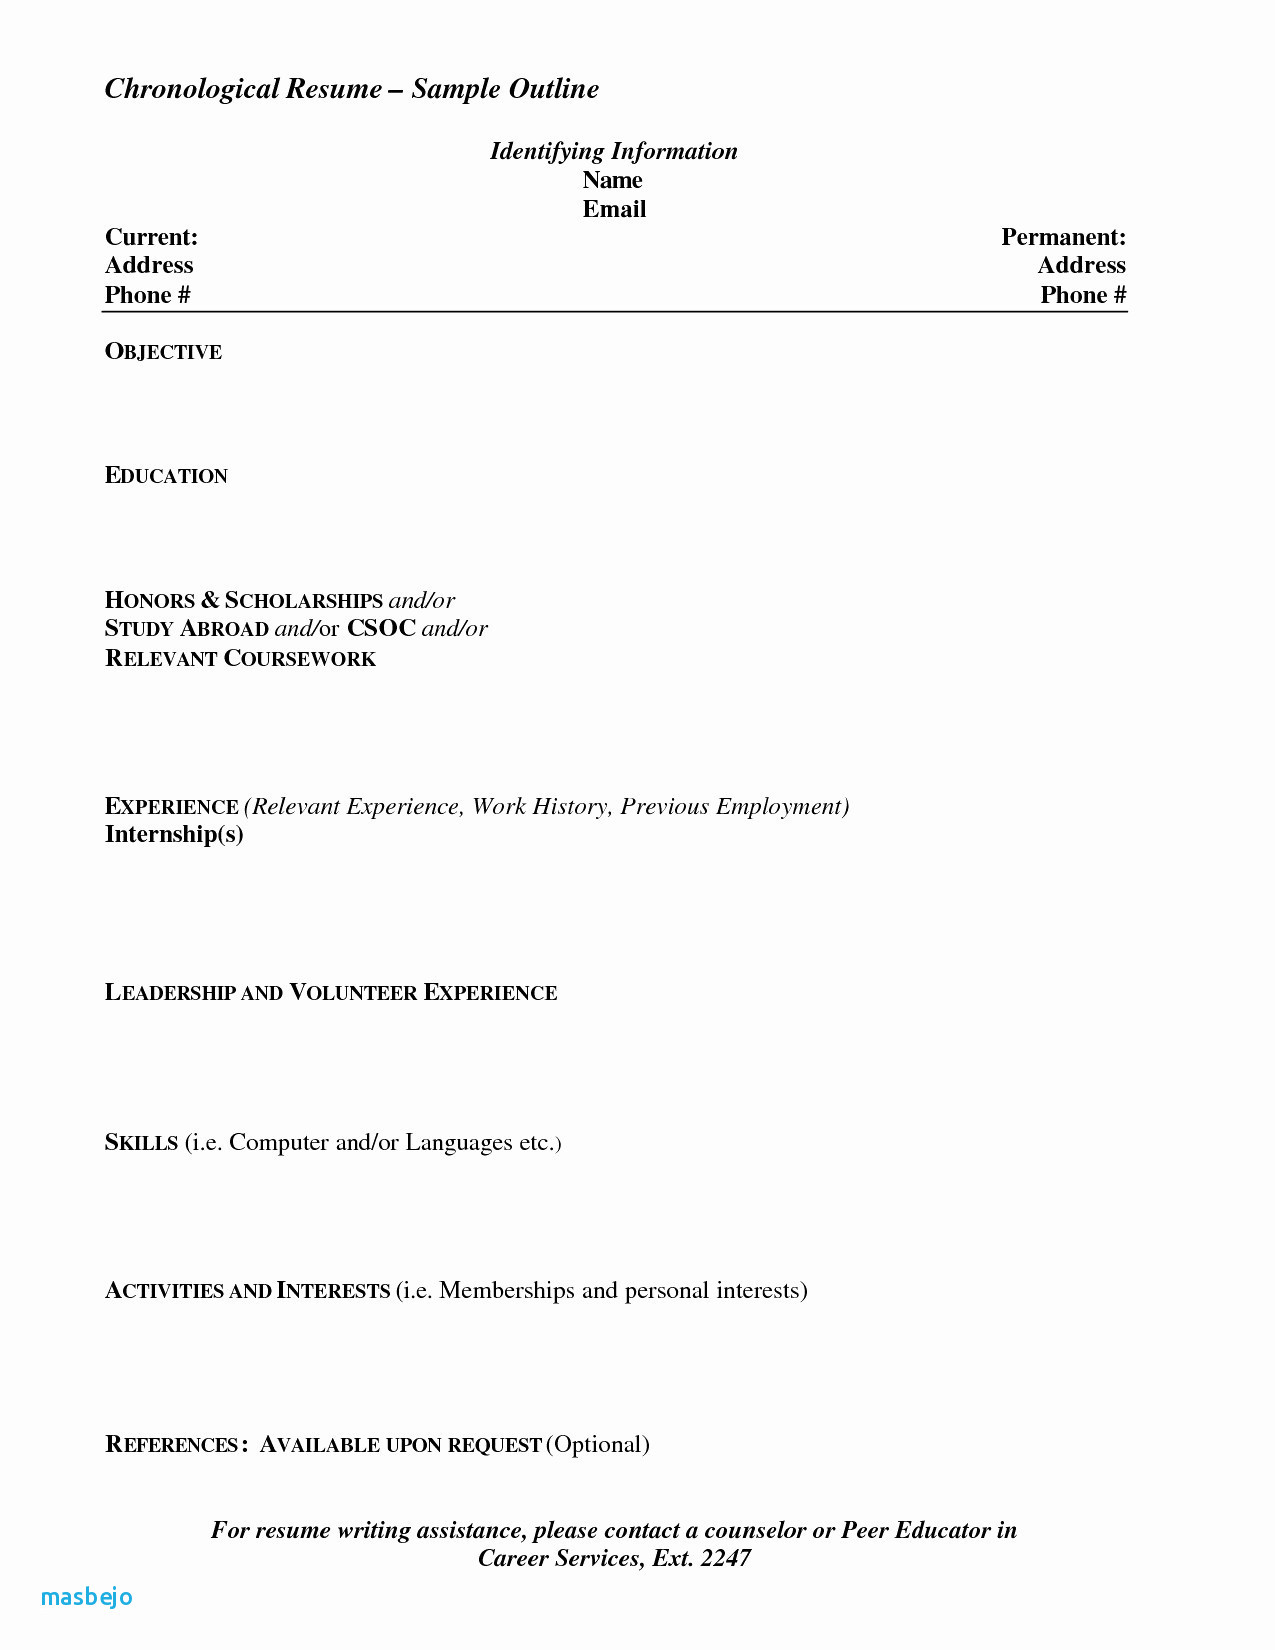 Hr Generalist Resume - Hr Generalist Resume 26 Simple Sample Resume Examples